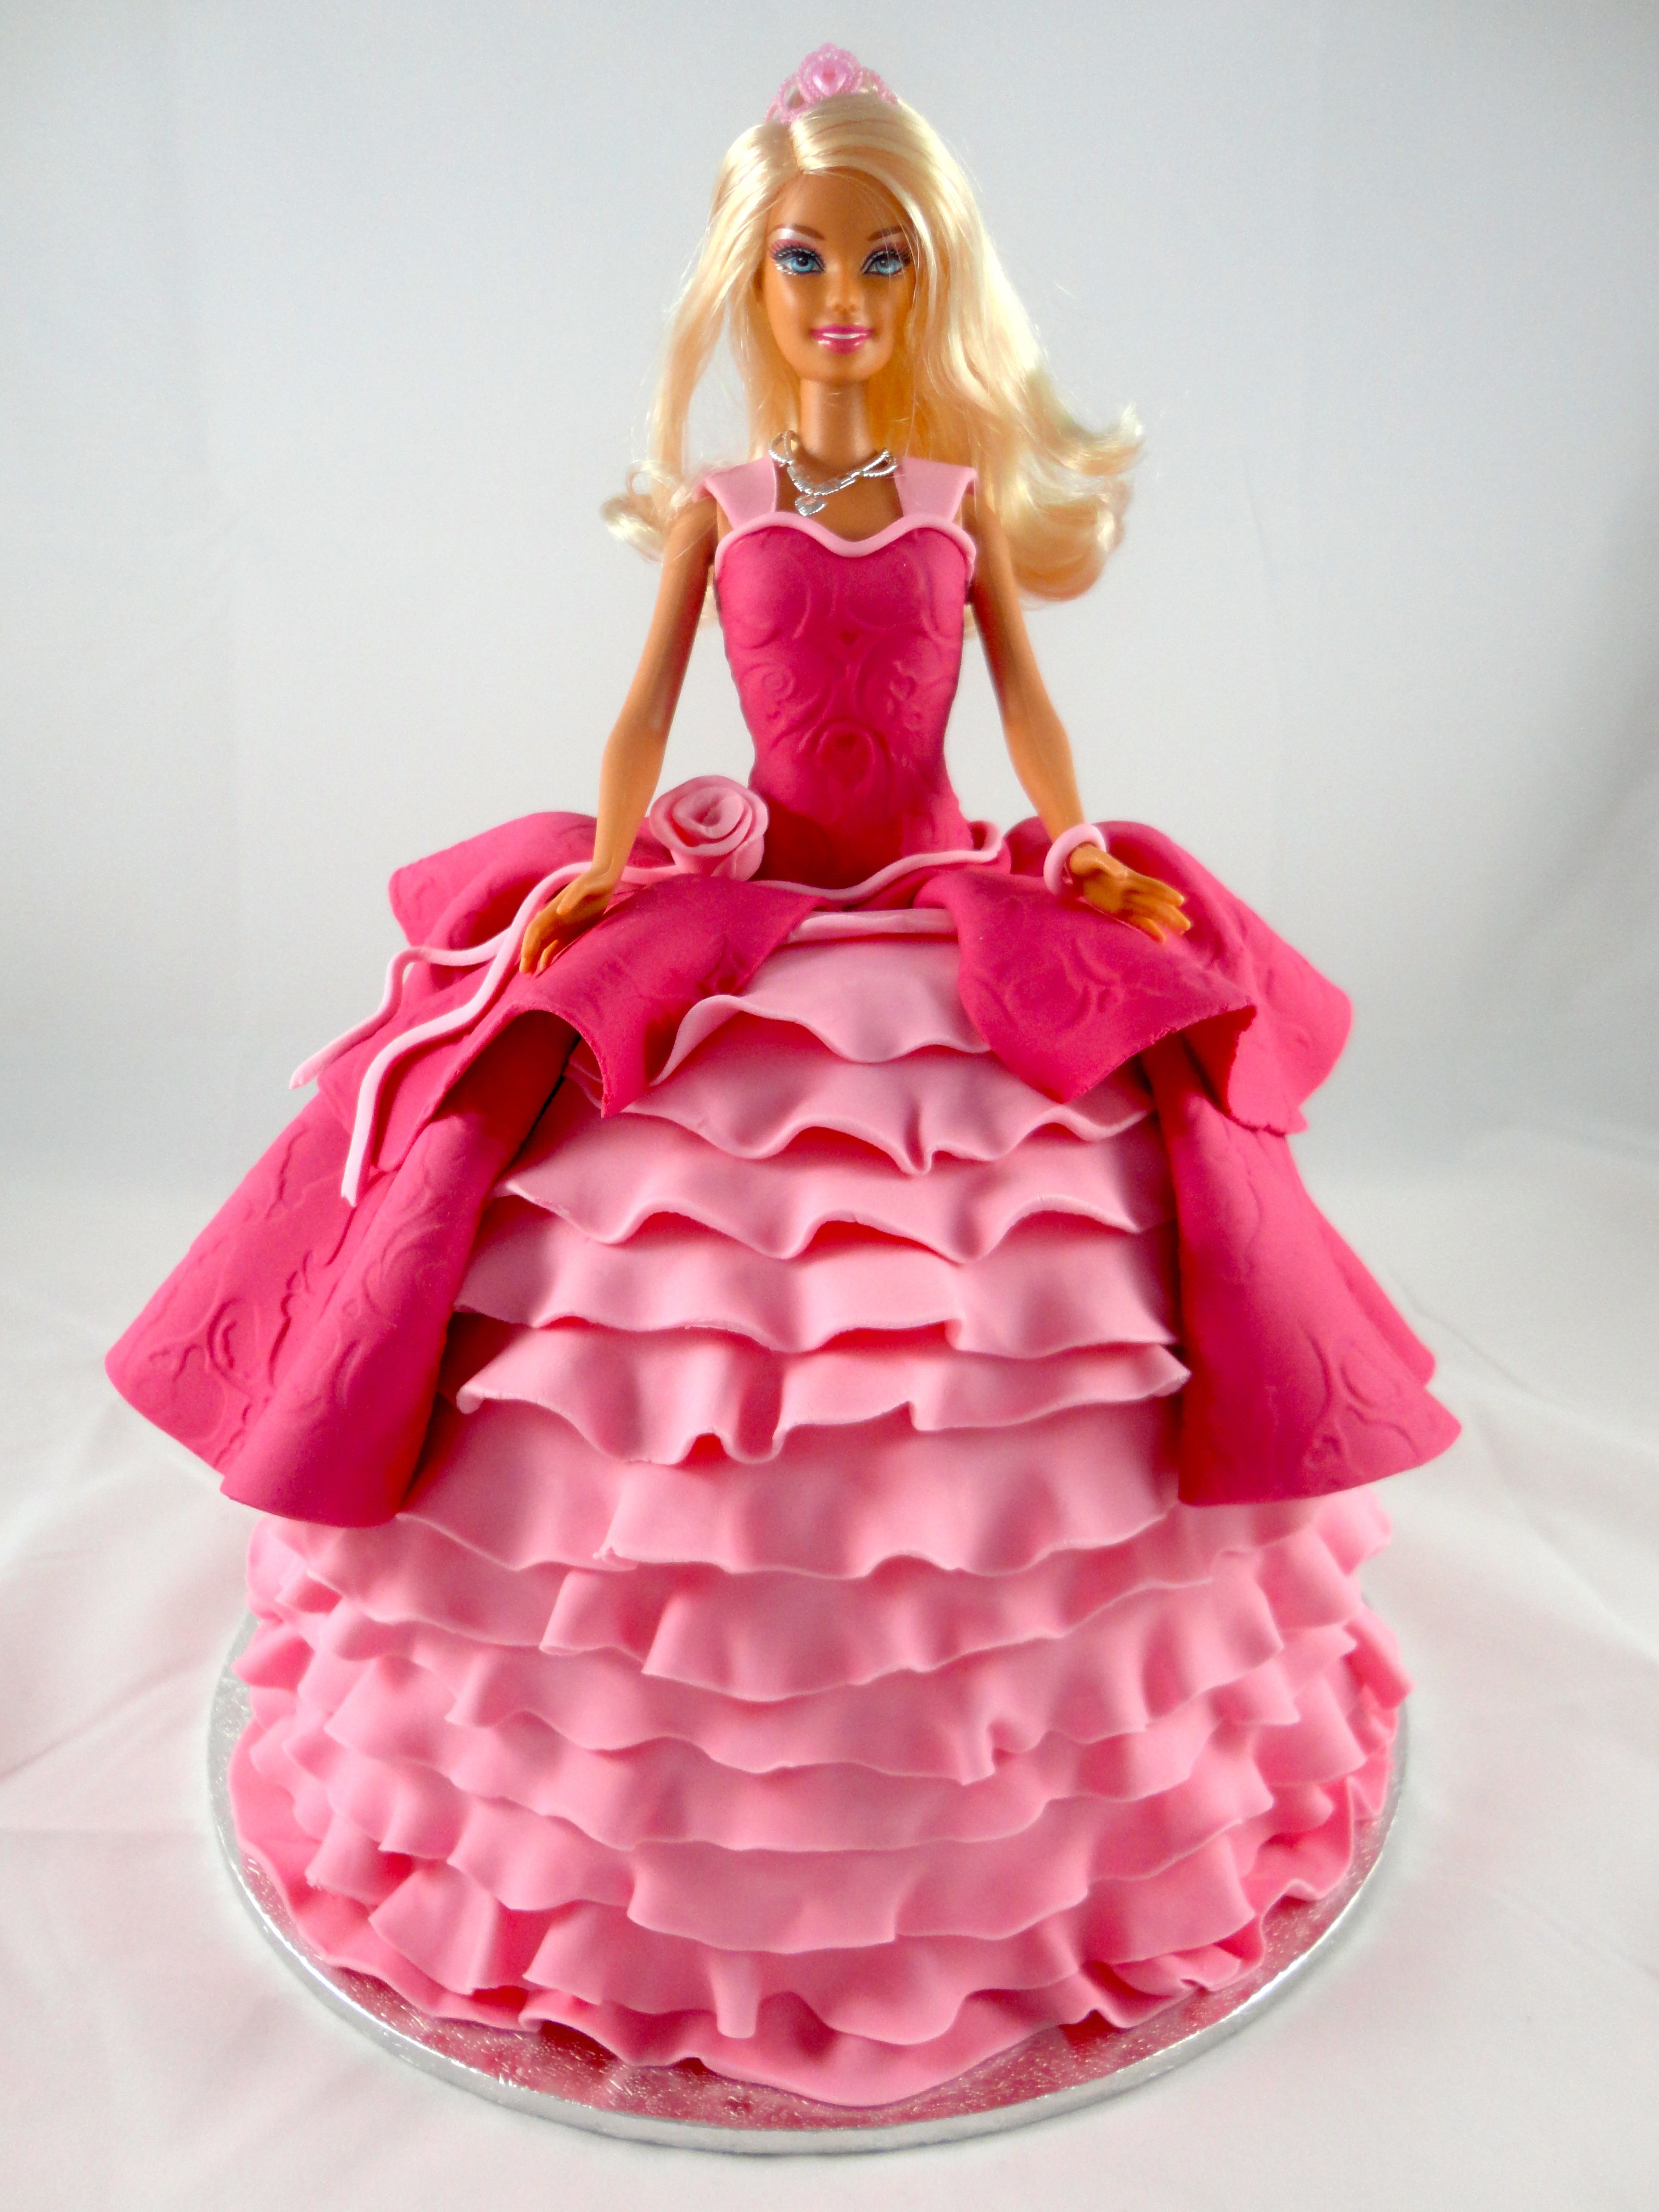 Doll Birthday Cake Cakes And Cupcakes For Kids Birthday Party - Birthday cake doll princess